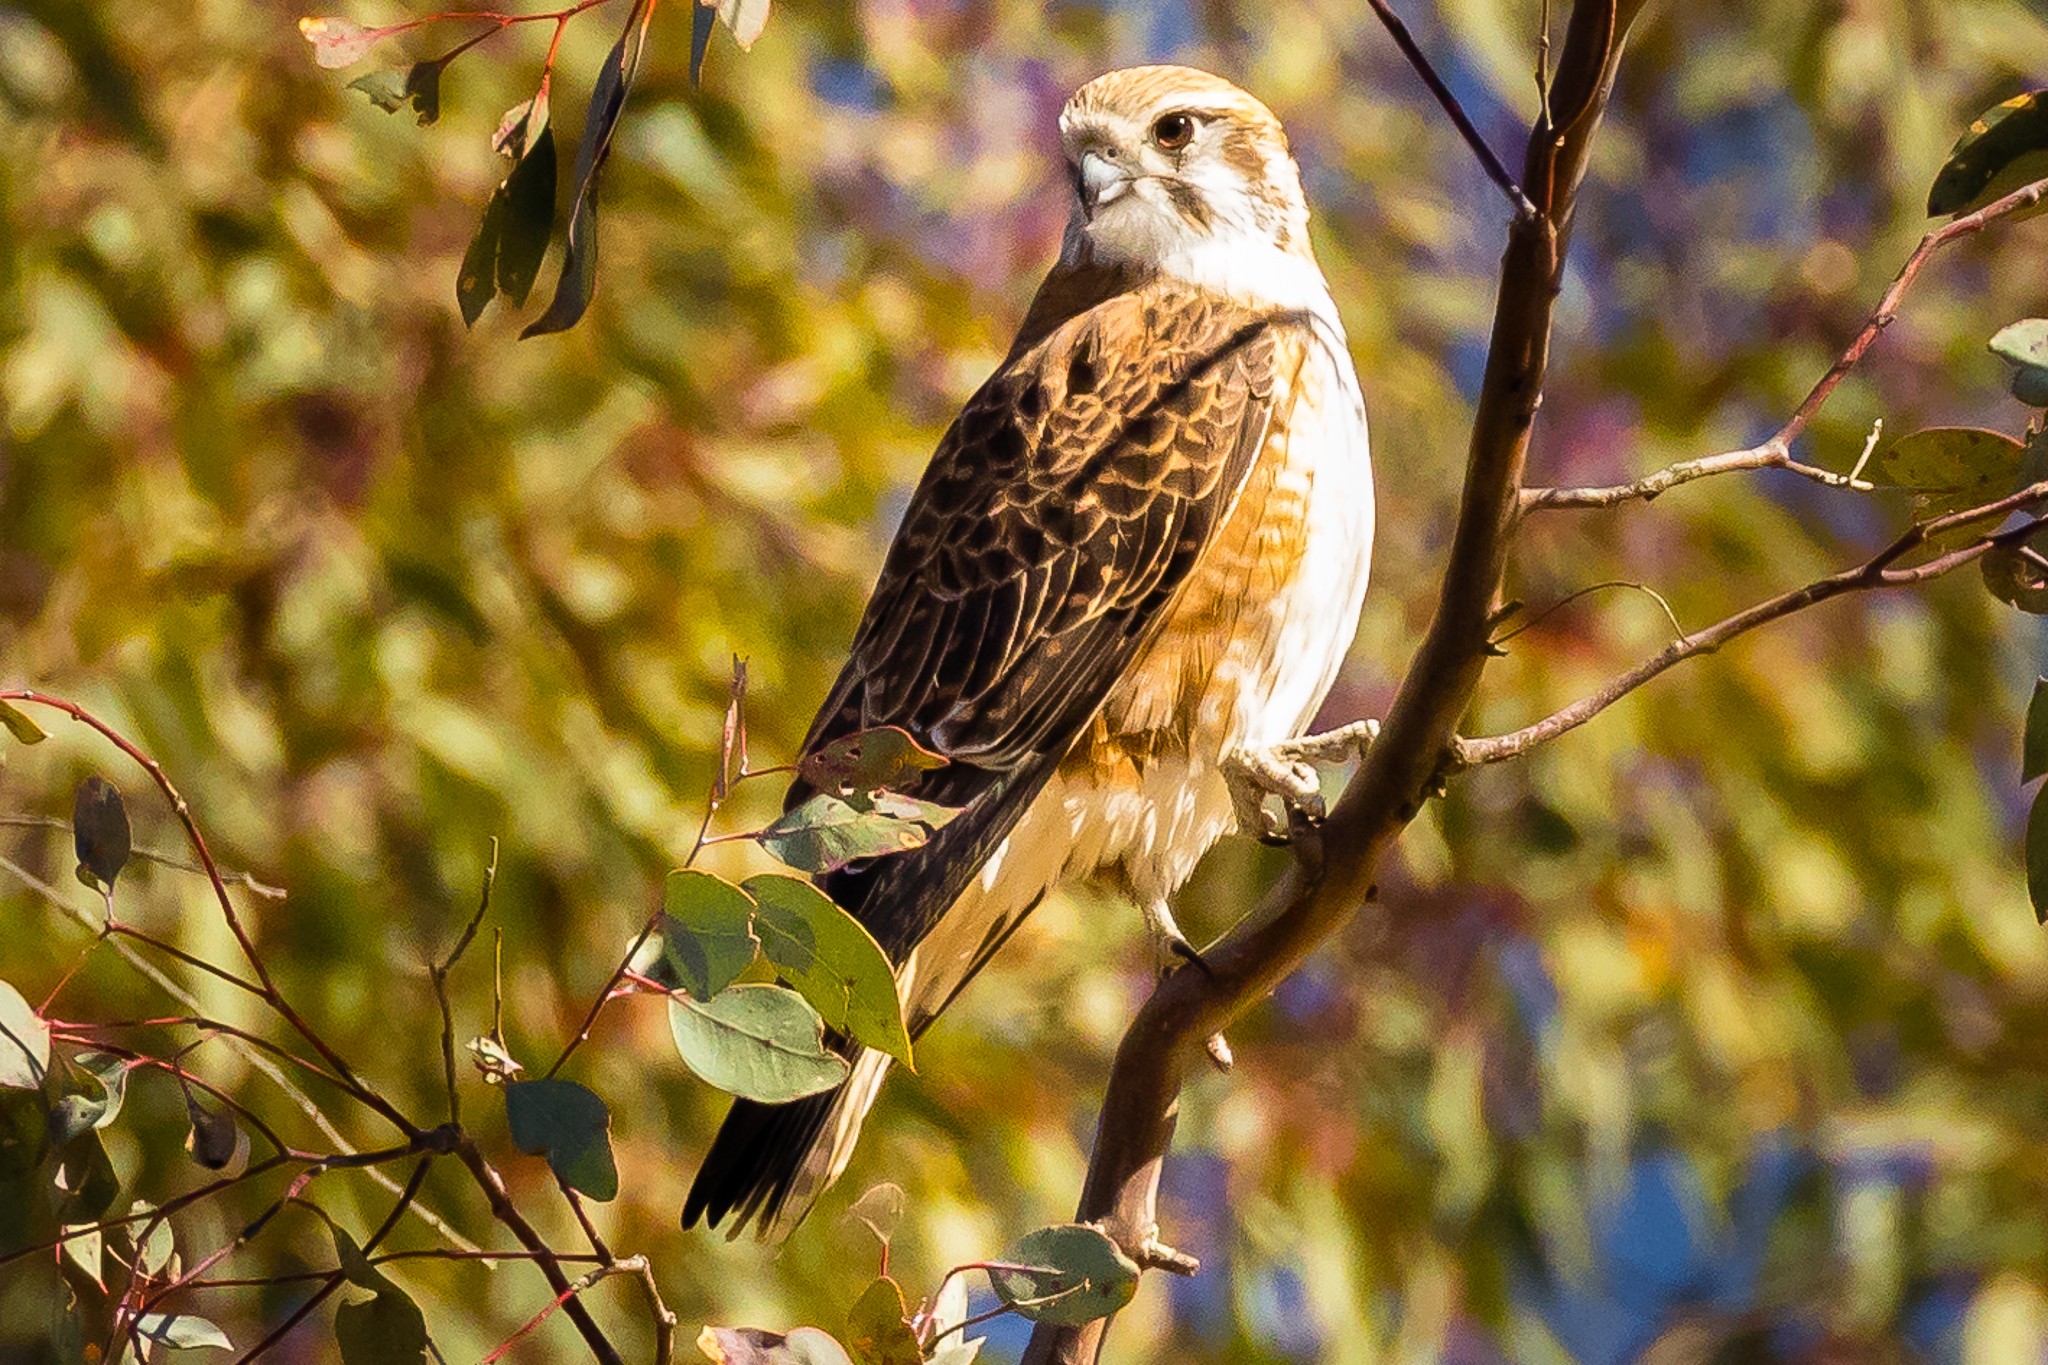 Brown Falcons, a medium sized raptor ( 50 cm in length), frequent open woodlands and farmland, watching for prey from trees and from power poles. The Brown Falcon swoops on its prey, killing with a bite from its powerful bill. They feed on small mammals, insects and reptiles.